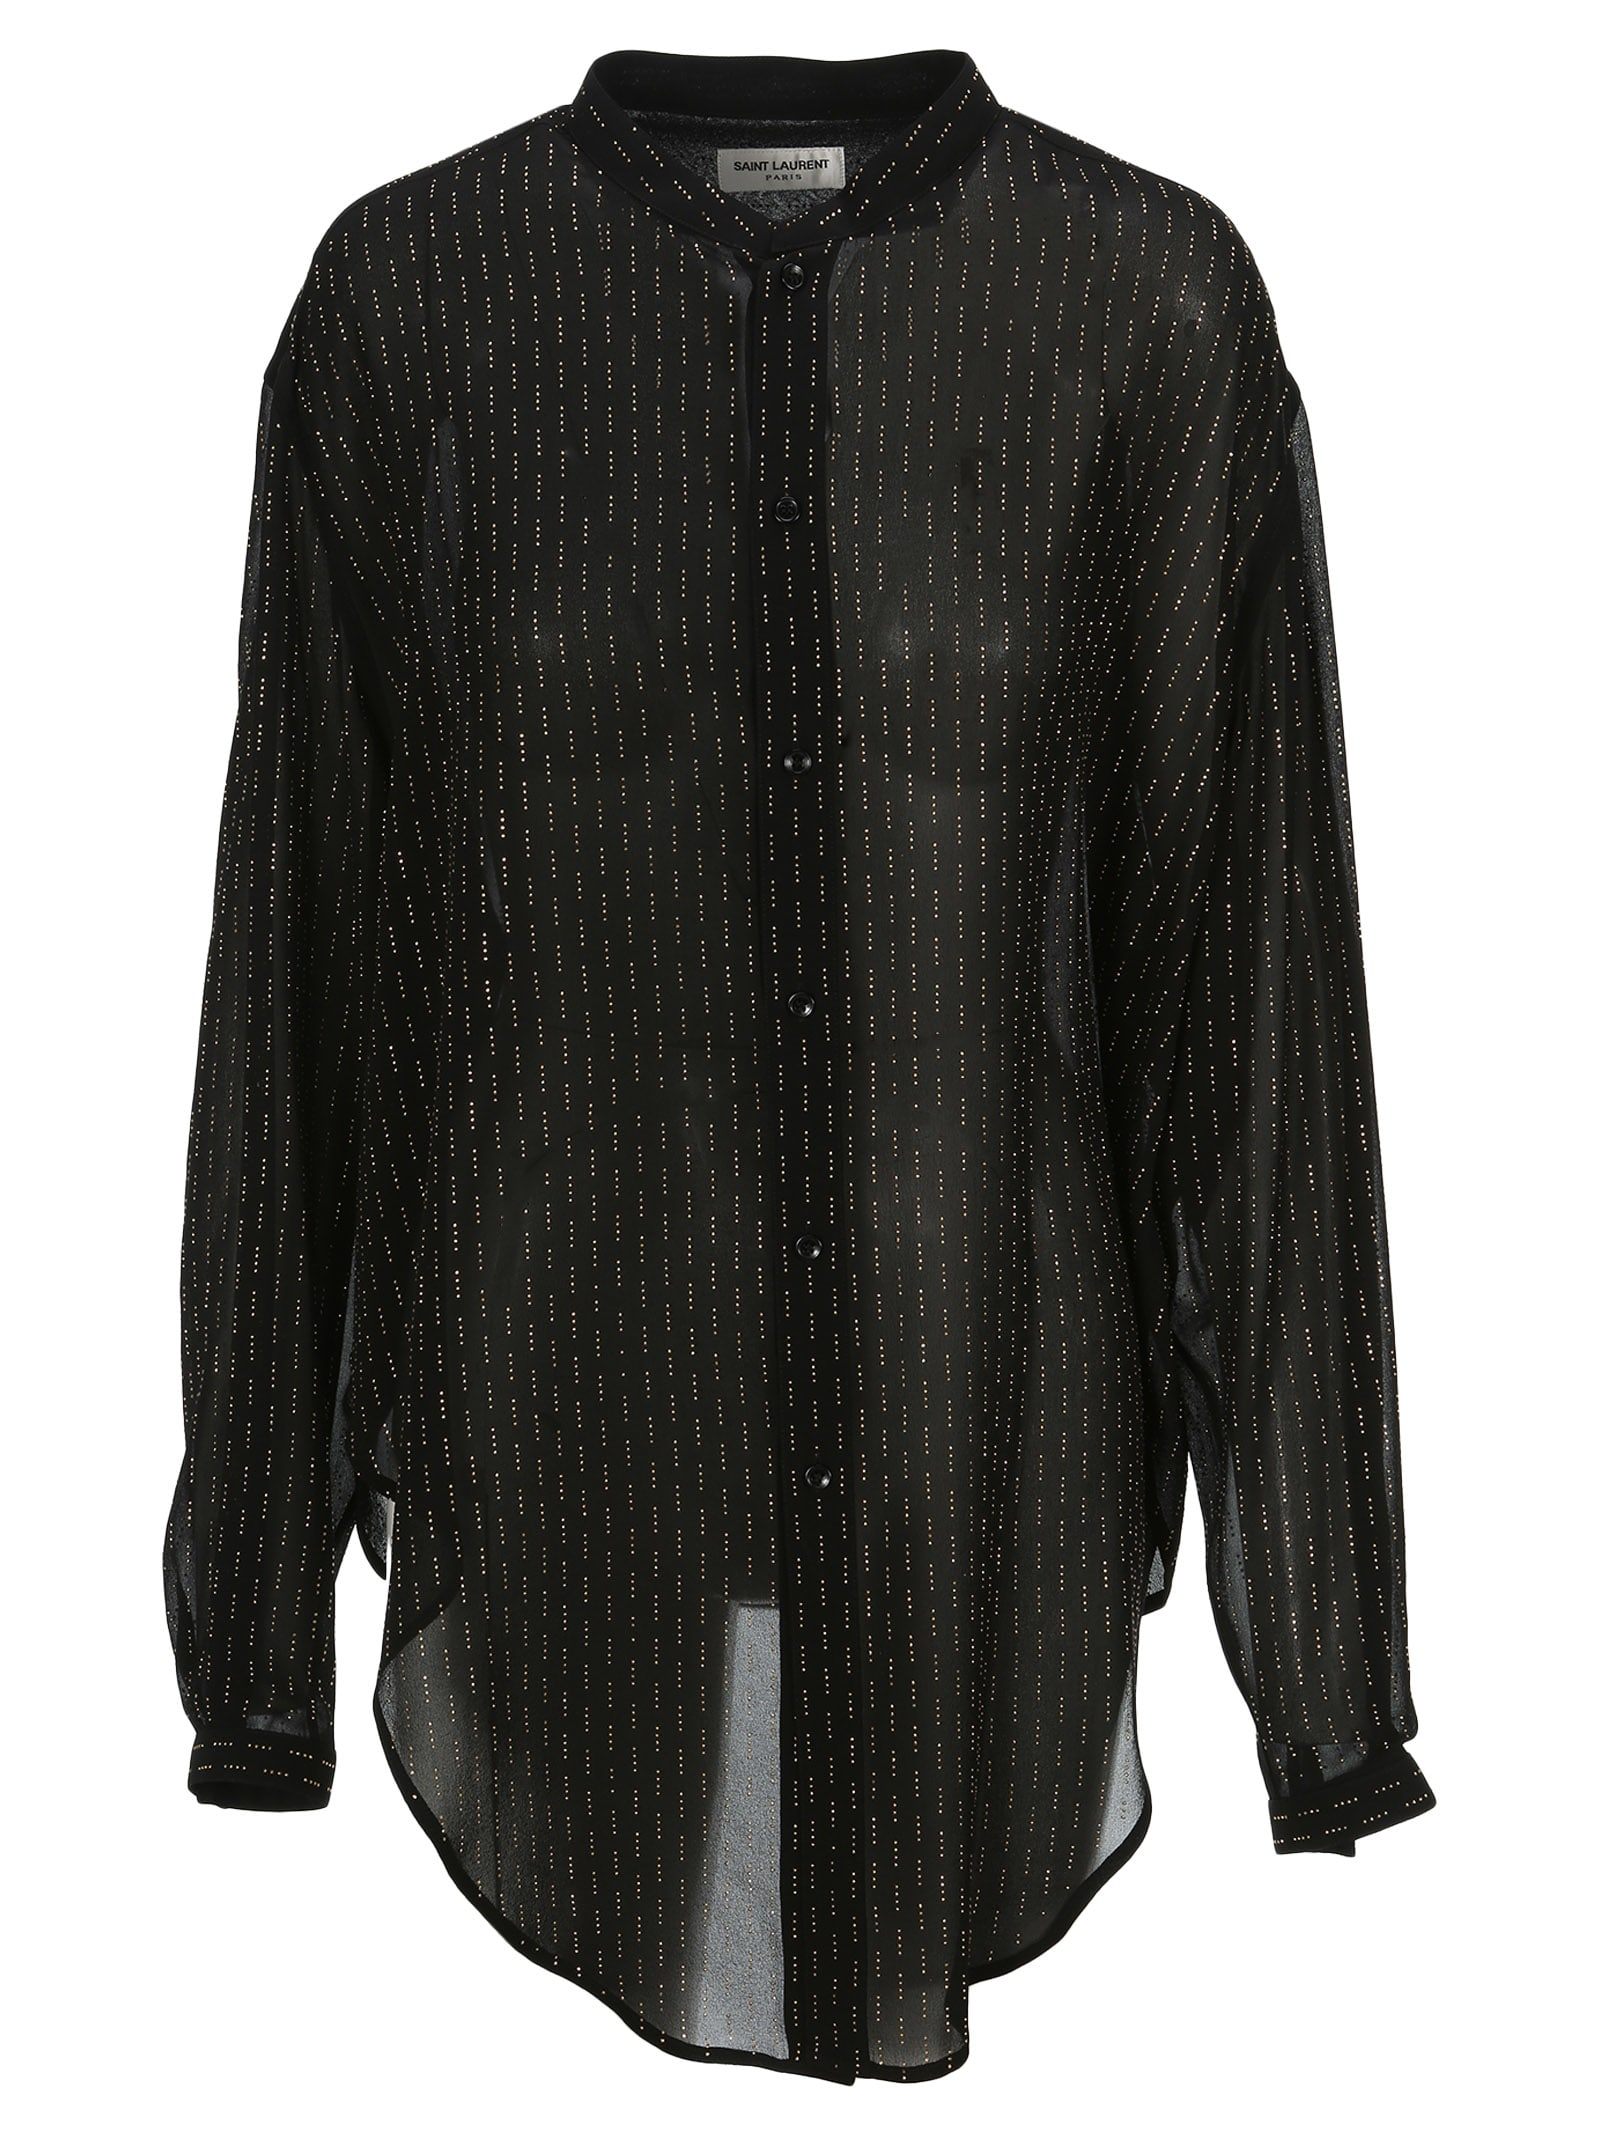 Saint Laurent Oversized Tie-up Shirt With Studs In Black Gold